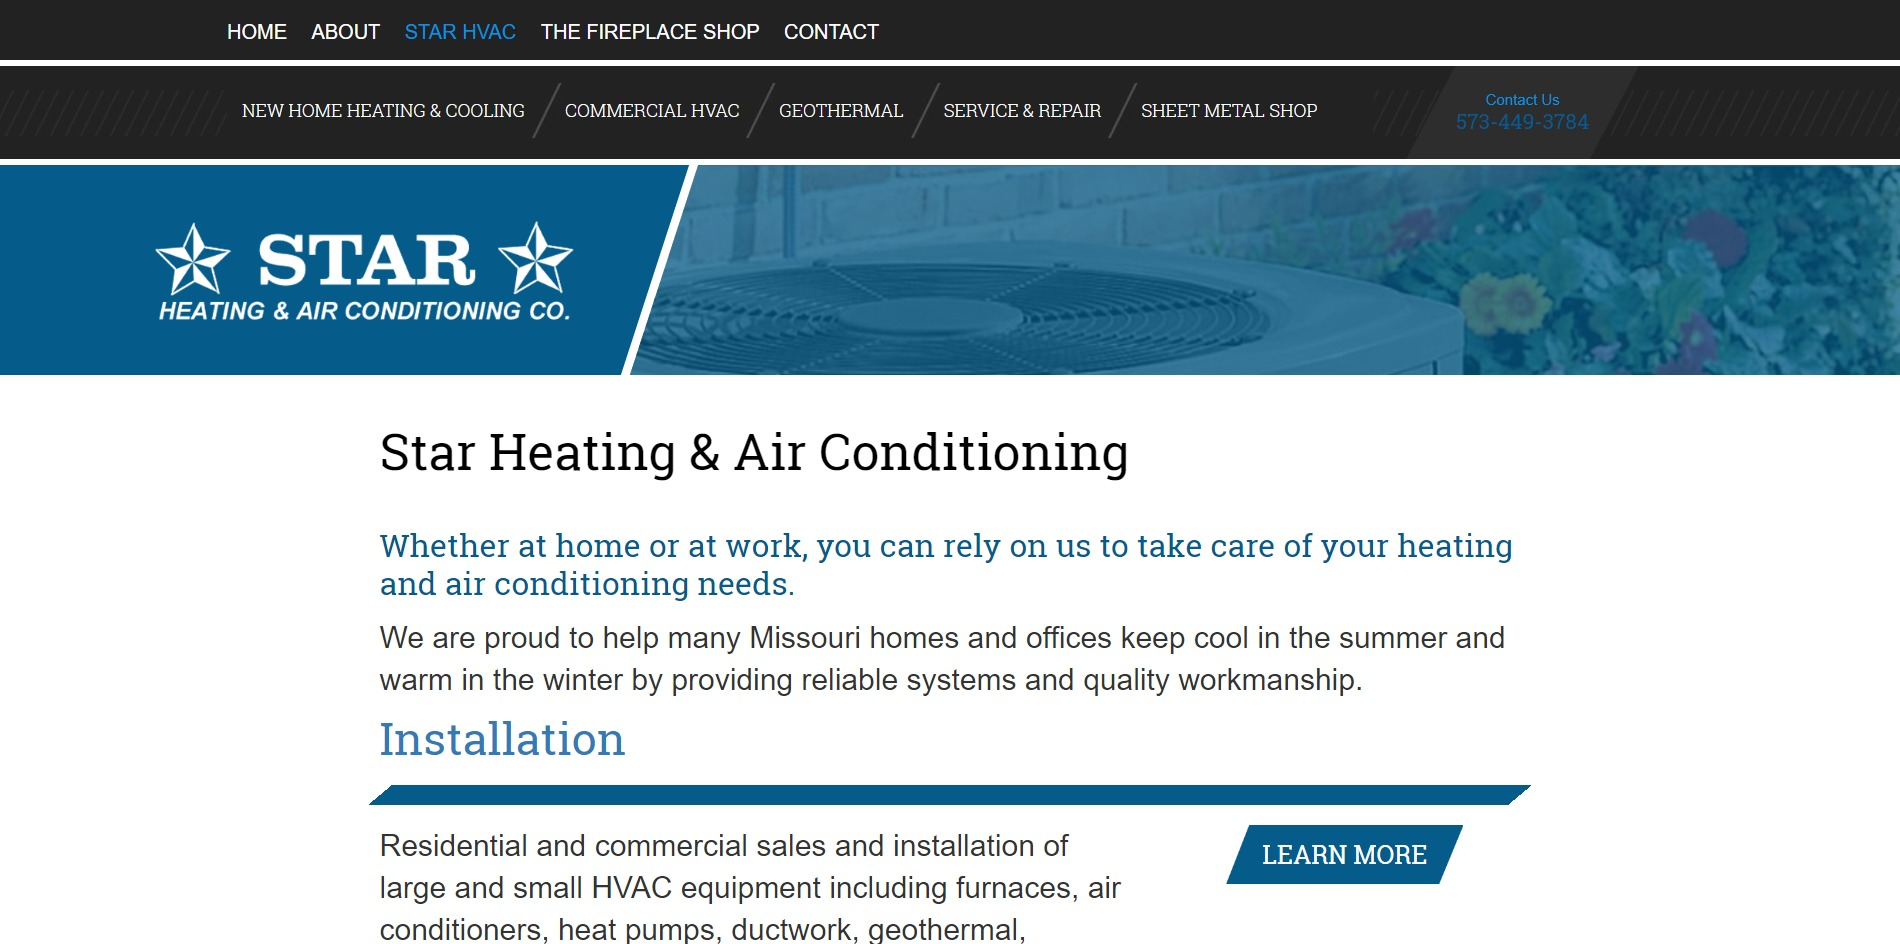 Star Heating and Air Conditioning's New Website: Star Heating Page